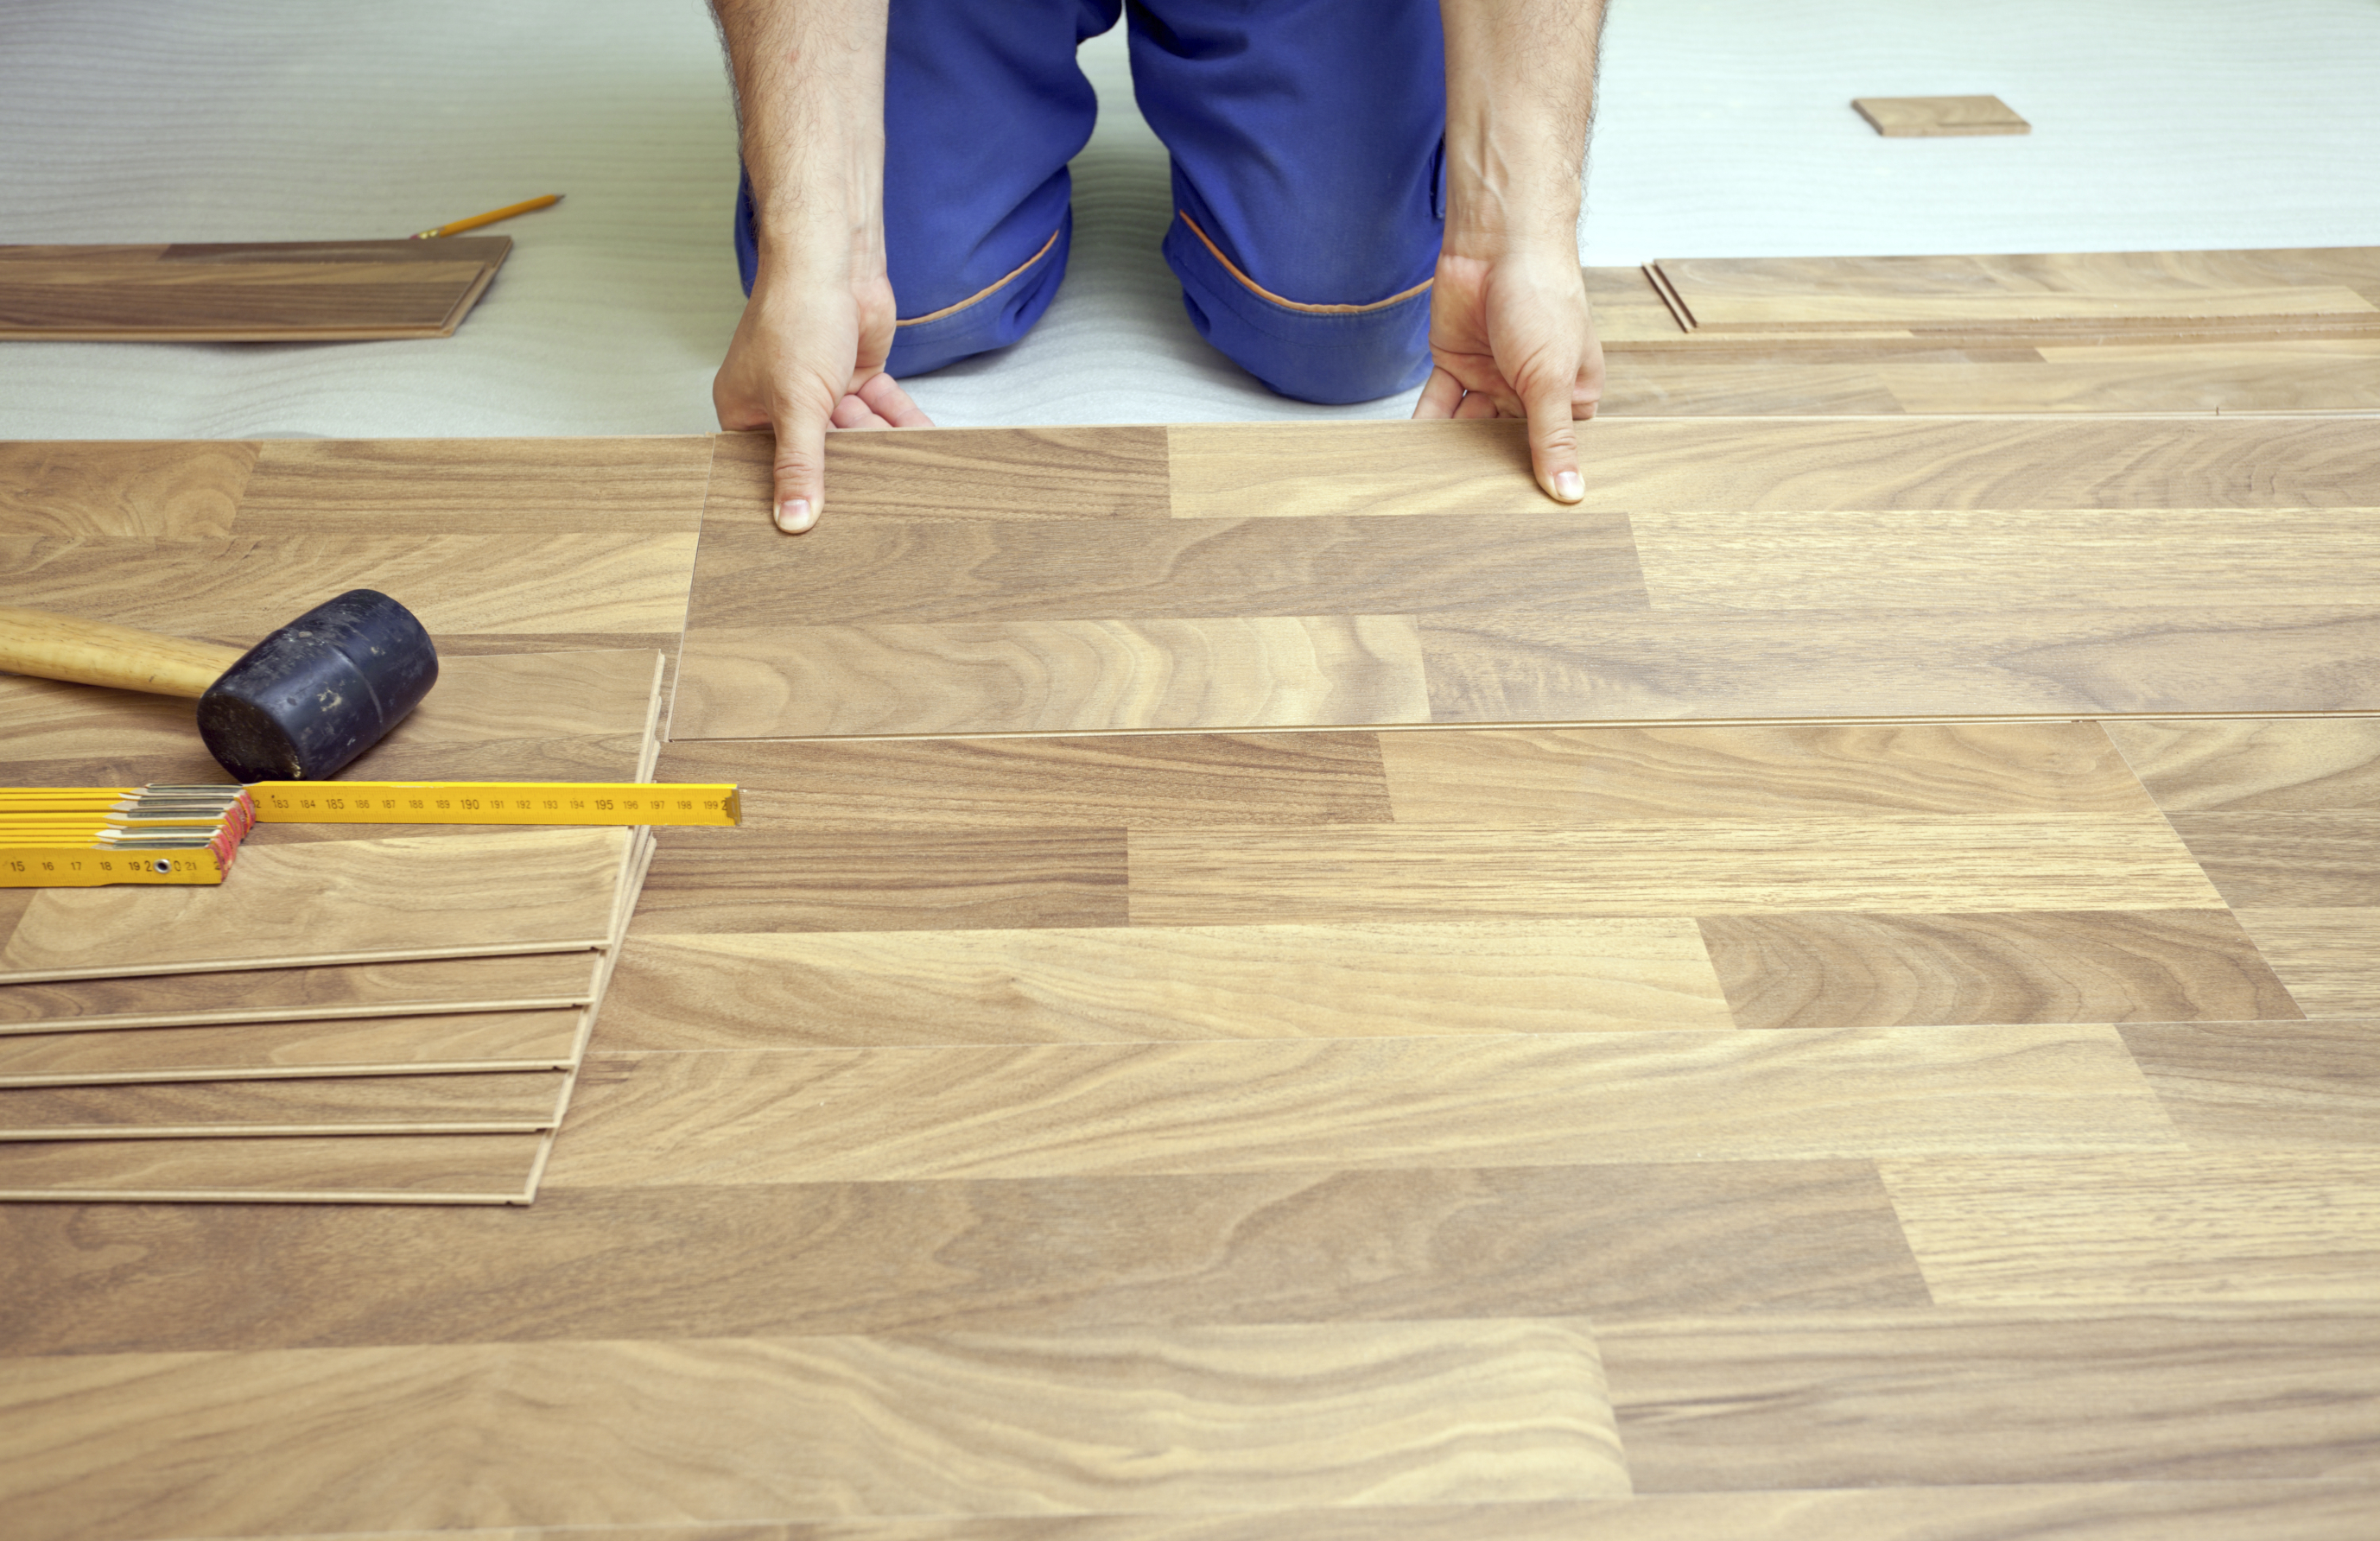 Awesome Allure Flooring Installation U2013 Guide To Avoid Mistakes | All About Flooring